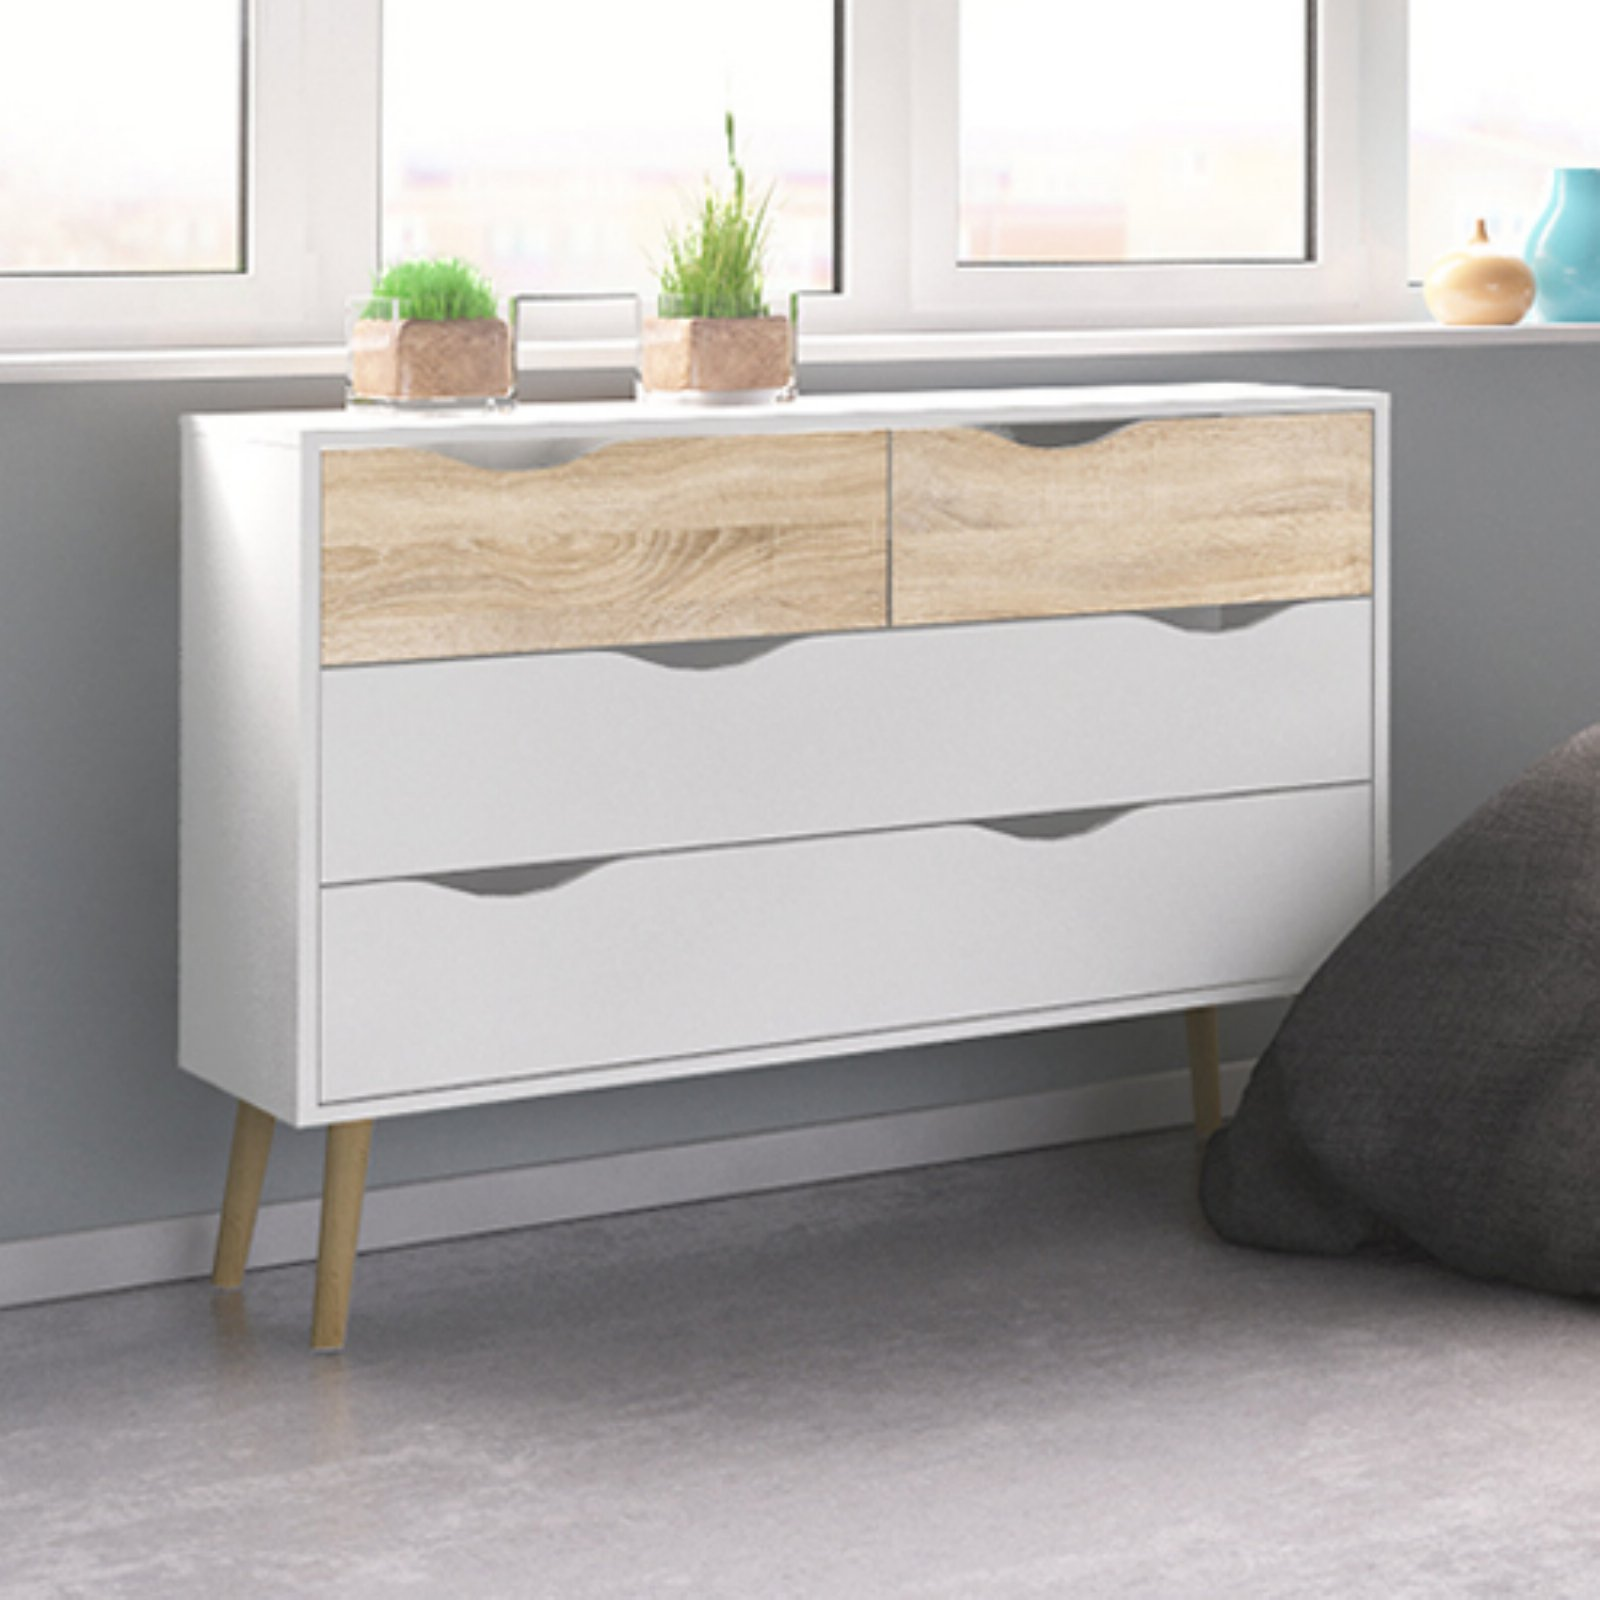 Tvilum Diana 4-Drawer Chest, Multiple Finishes